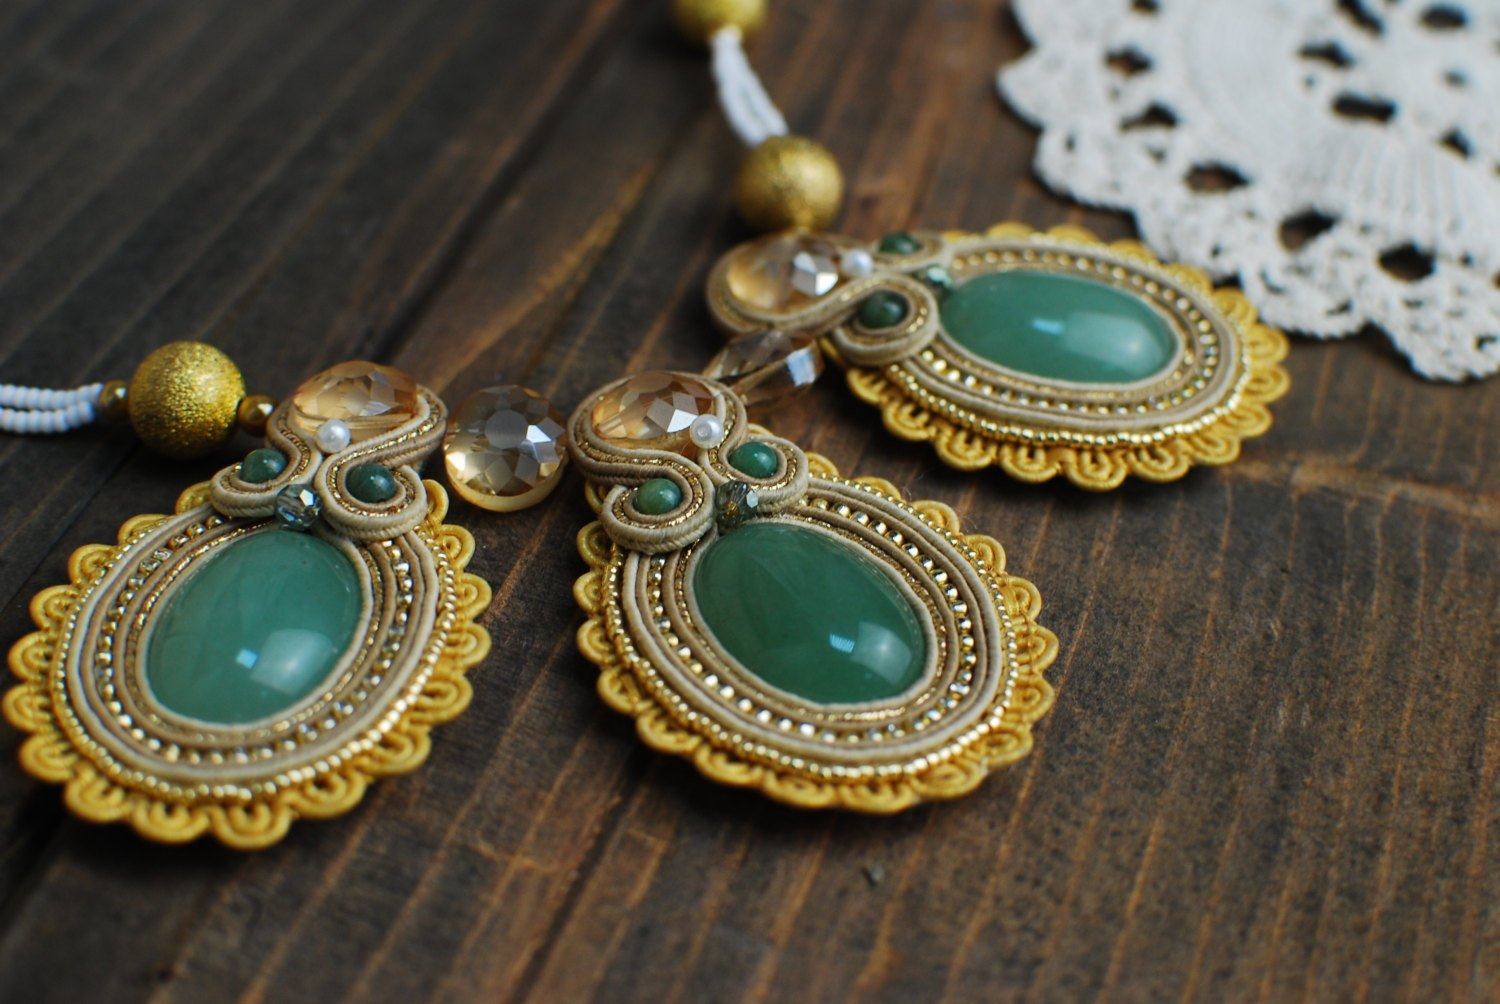 Soutache necklace, Gold and green necklace, Embroidered necklace, Beaded necklace